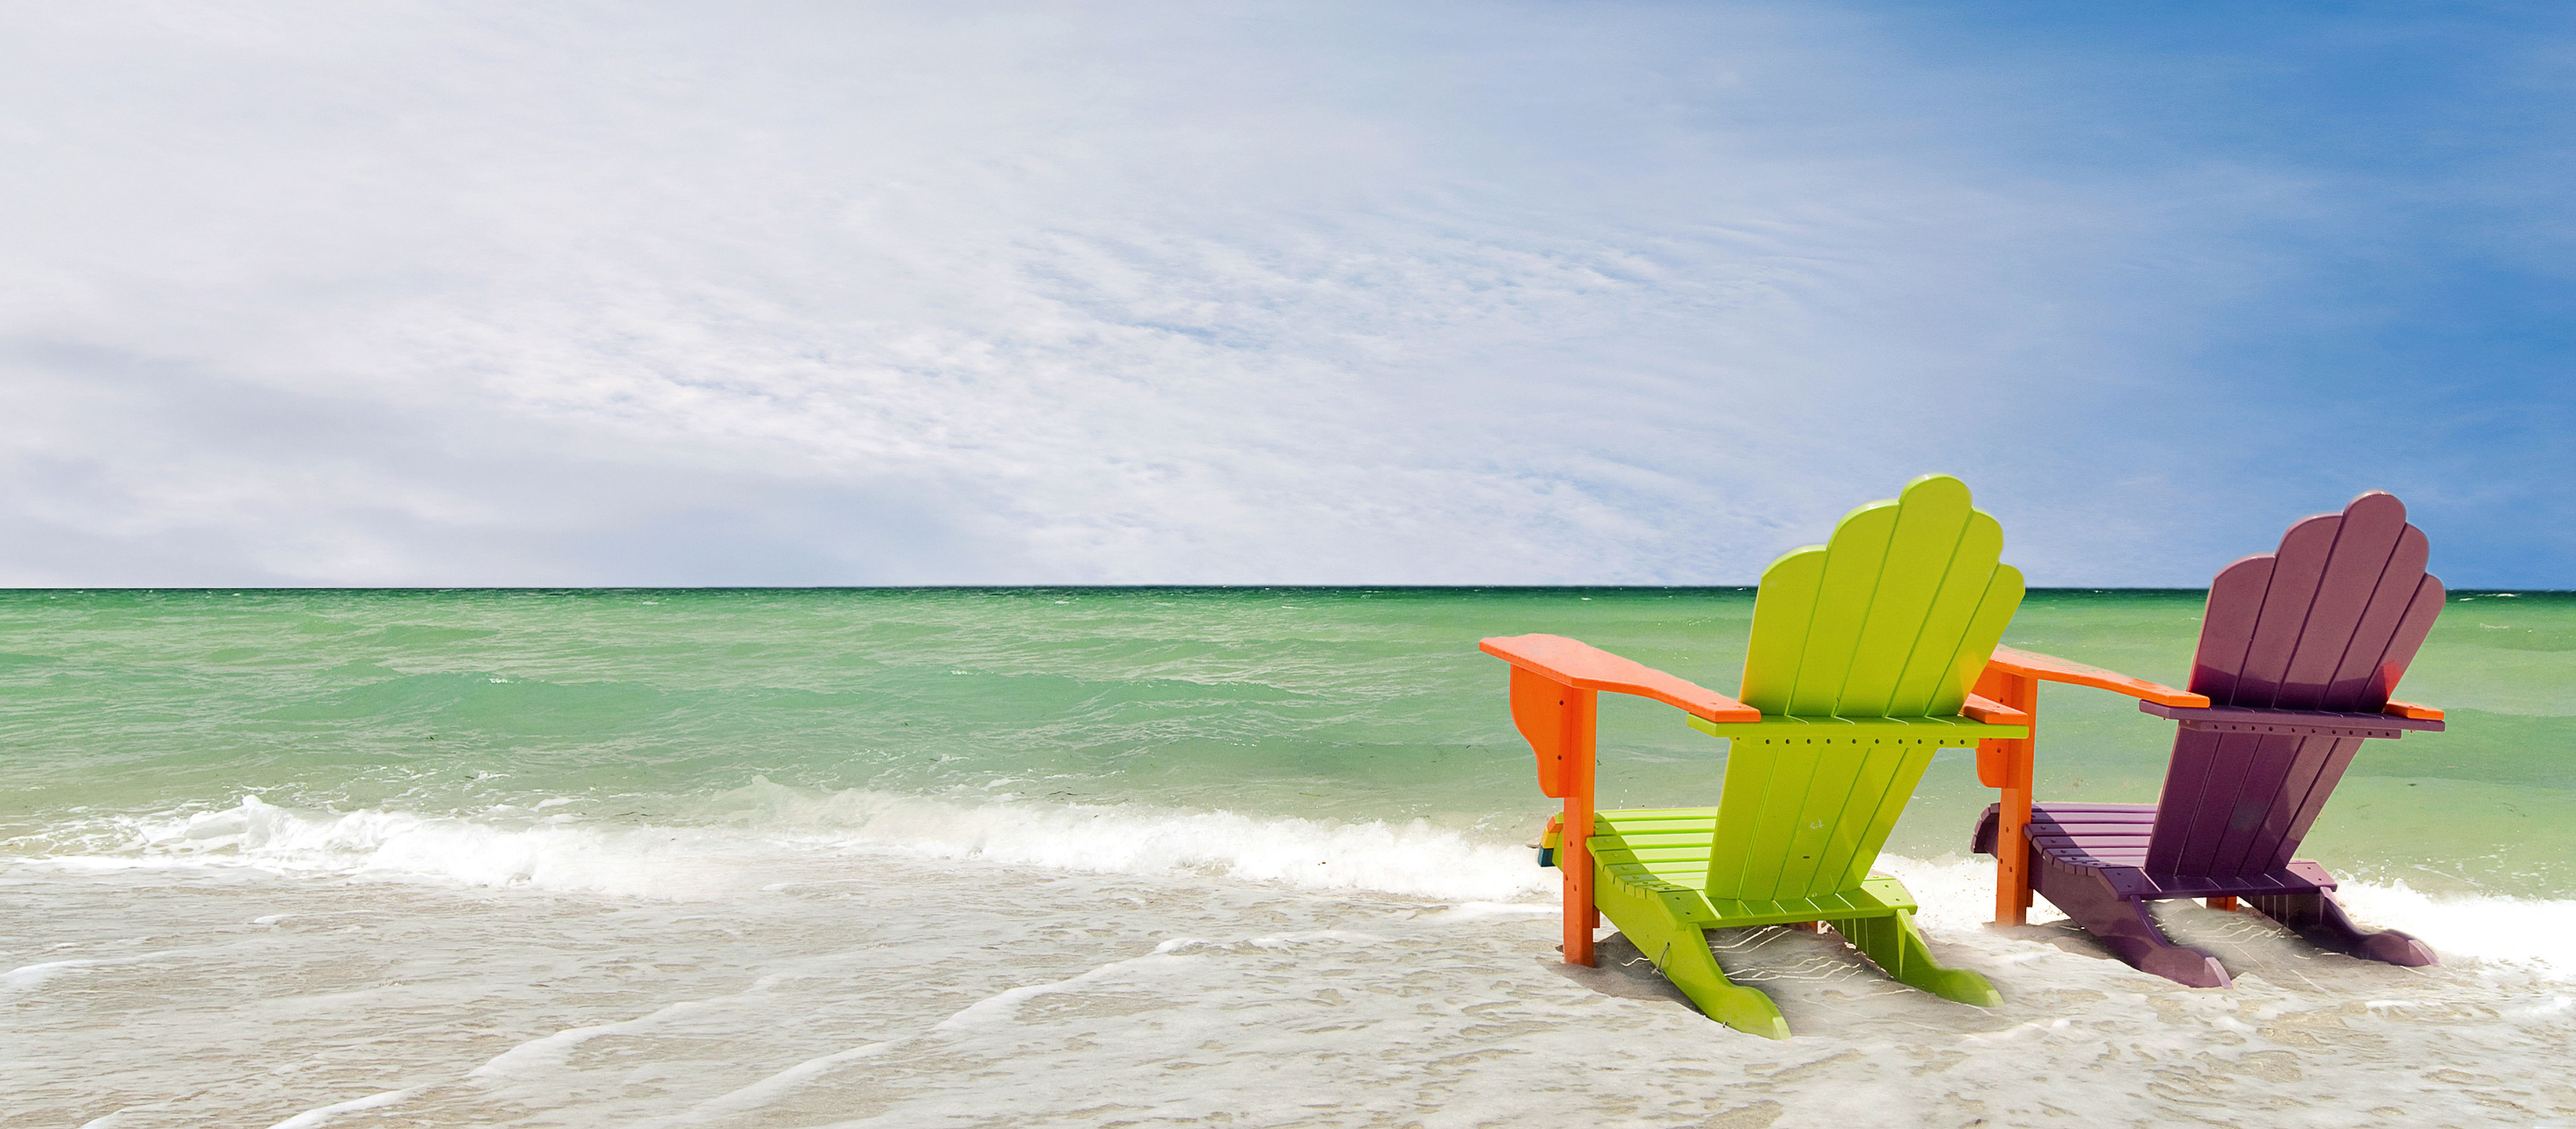 Bunte Lounge Chairs am Strand von Miami, Florida, USA